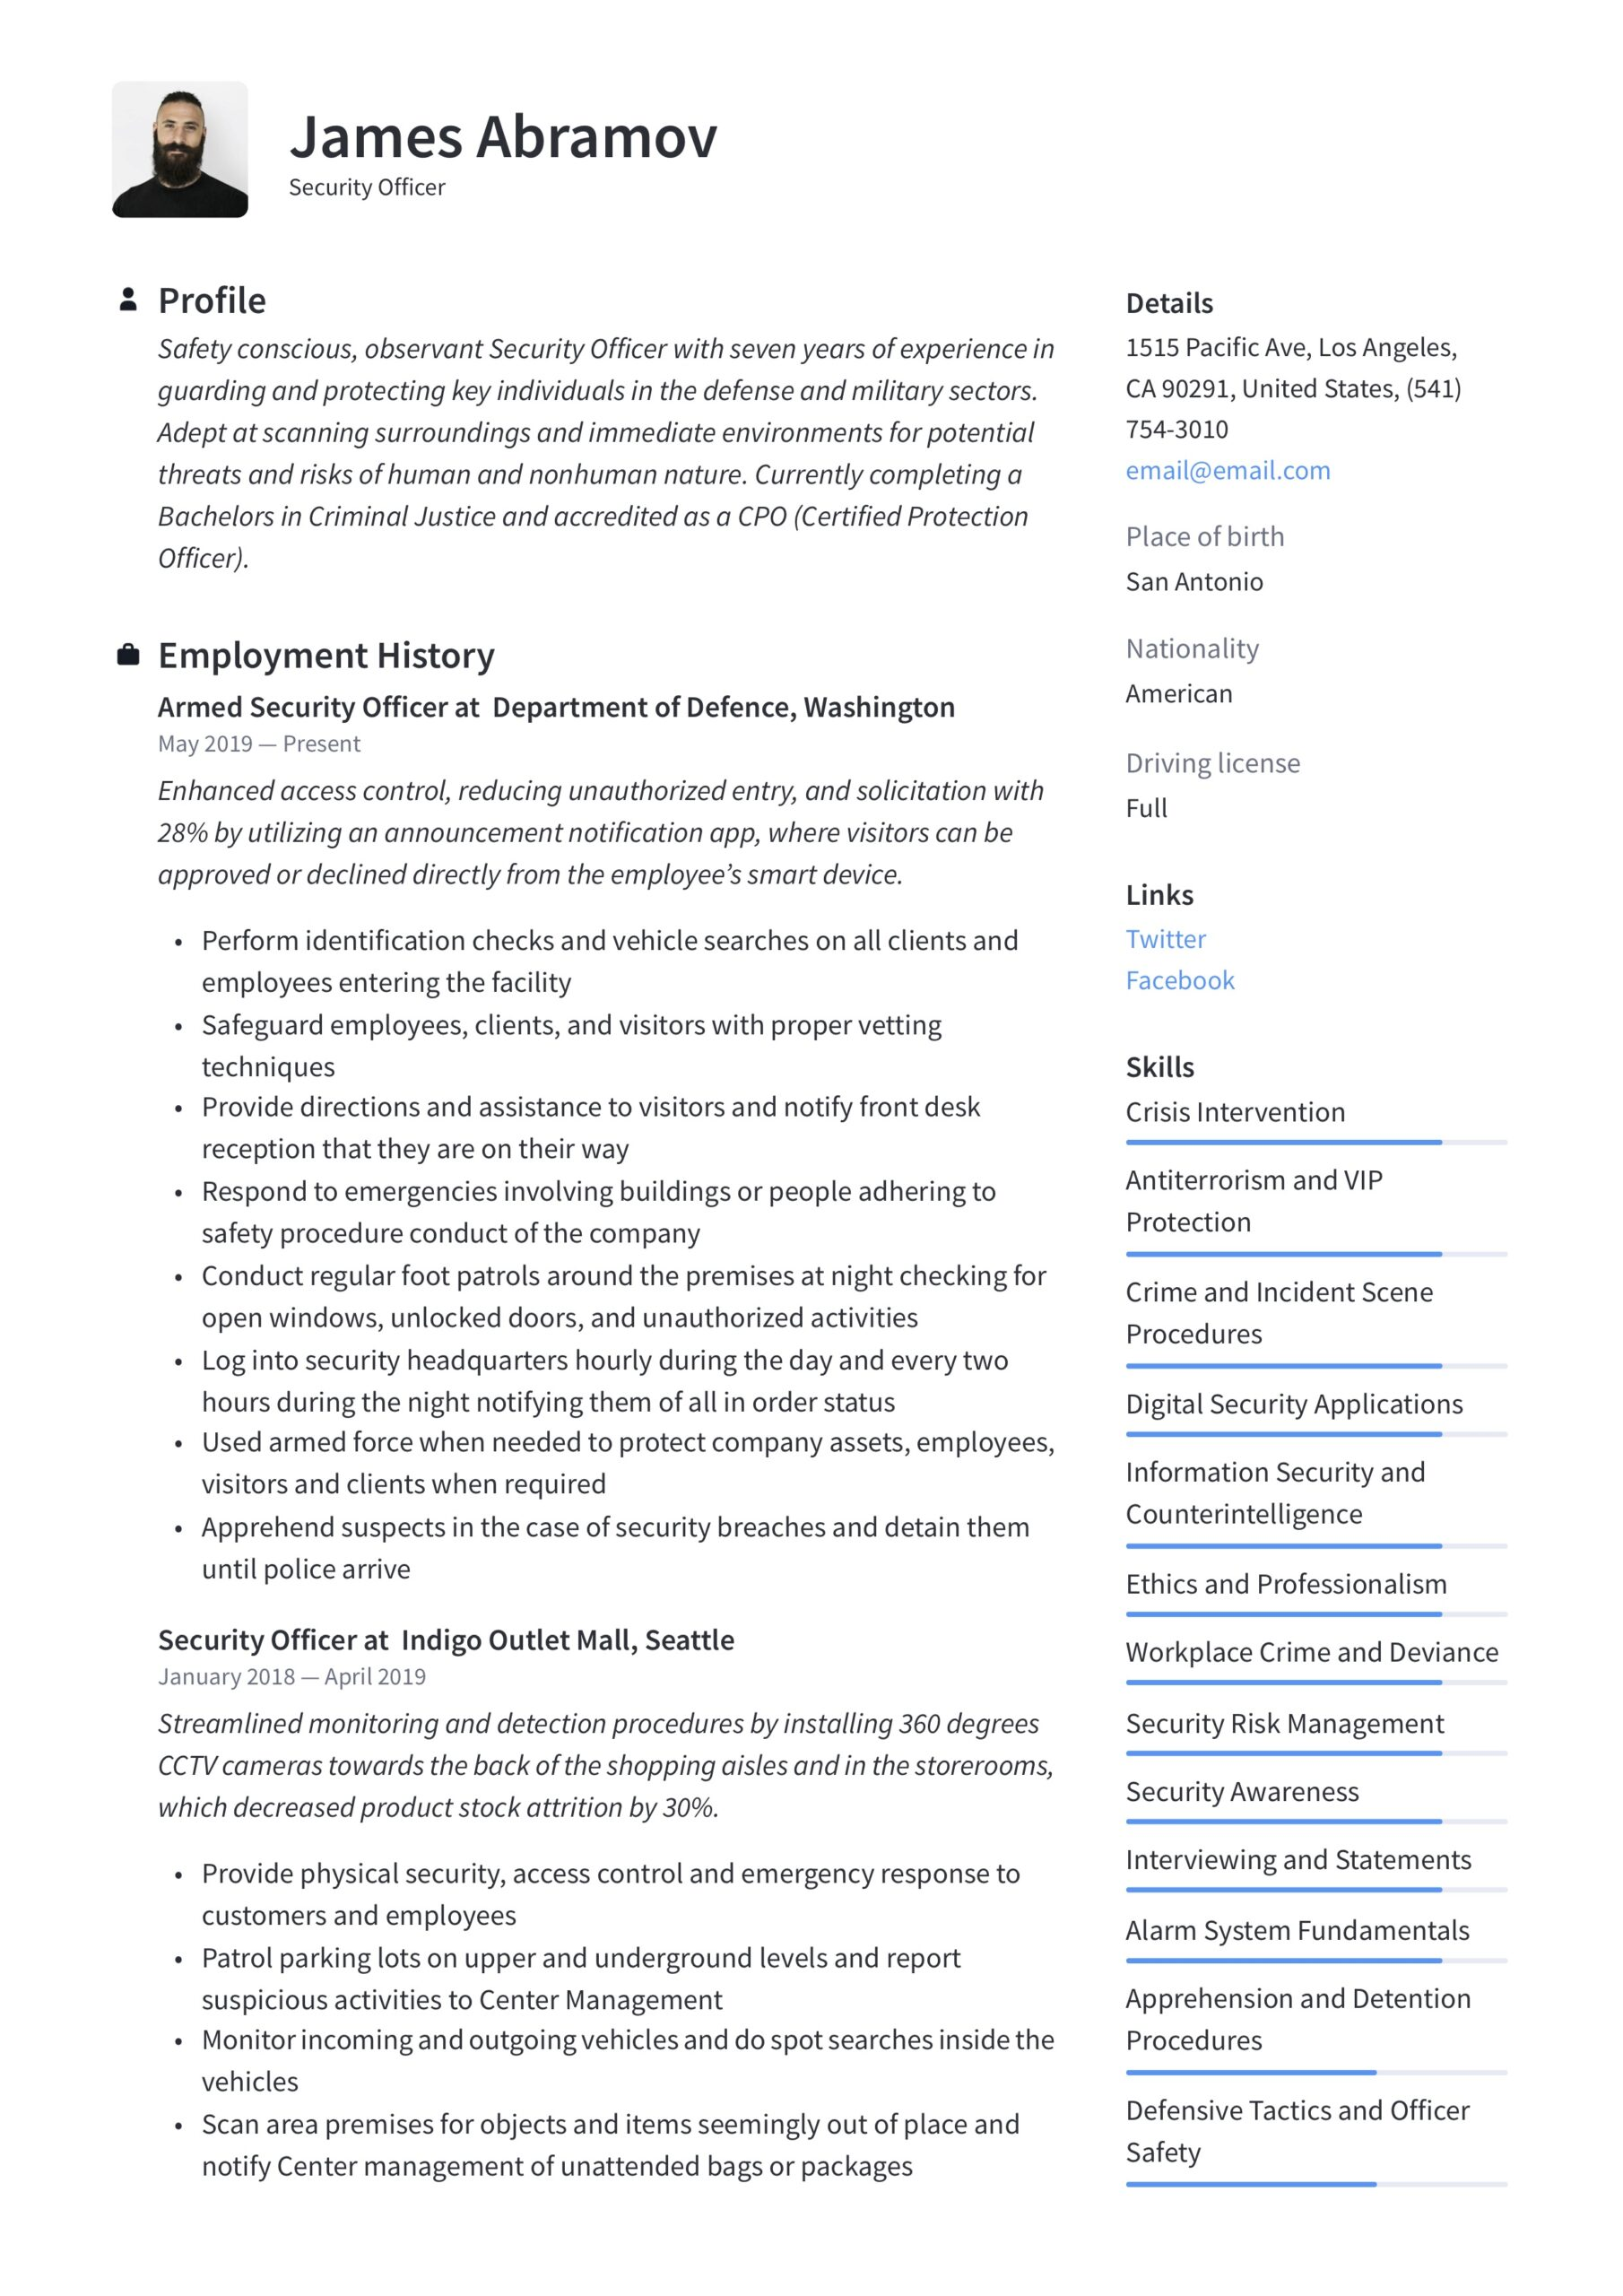 security officer resume writing guide examples duties better naperville new grad nursing Resume Security Officer Resume Duties